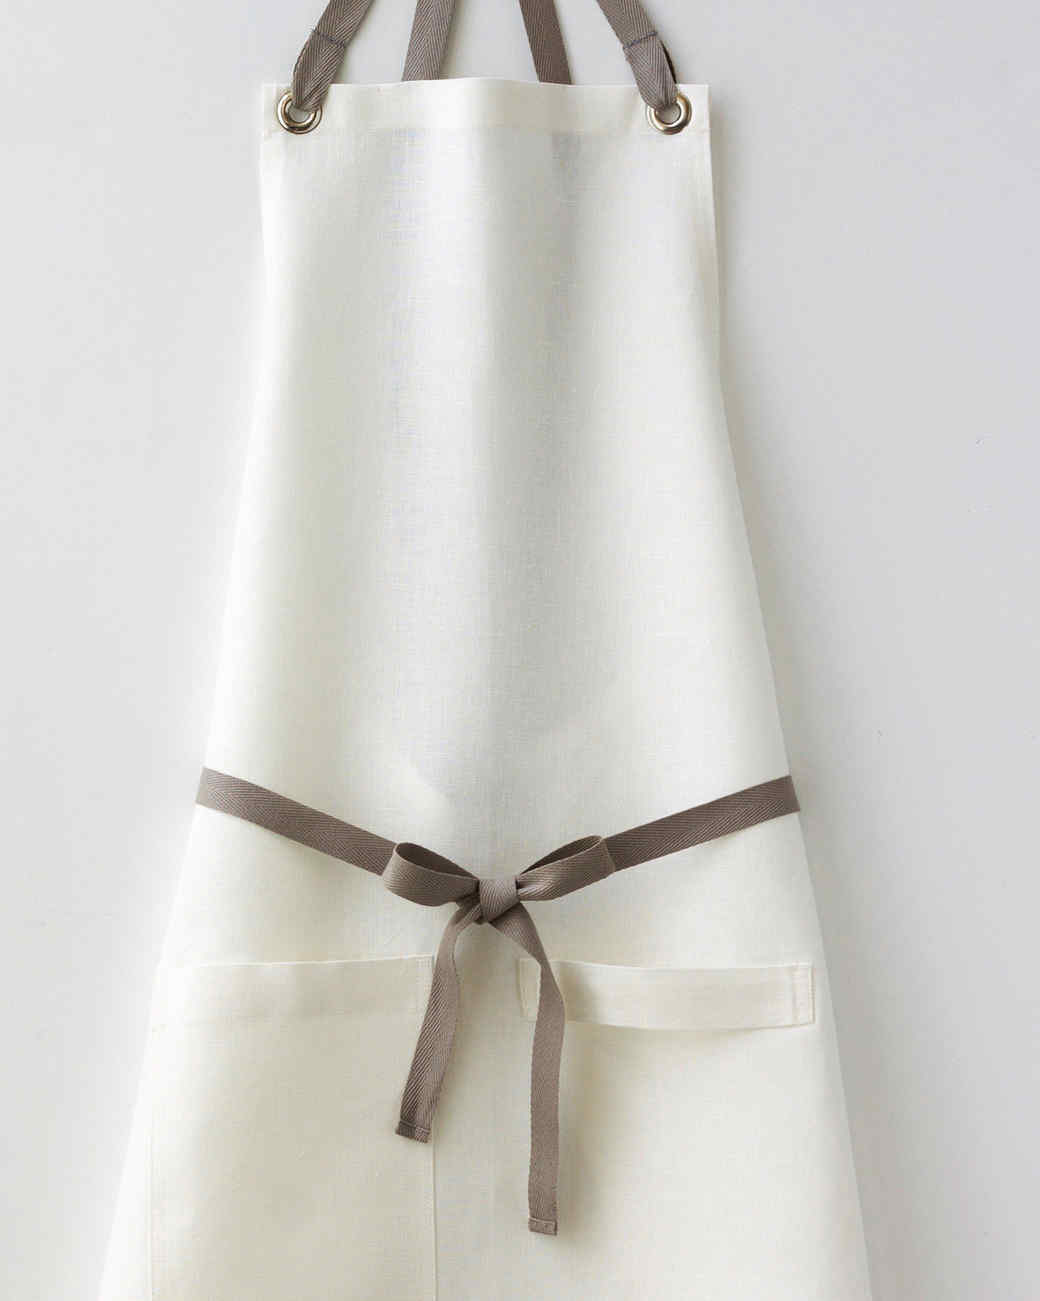 studio-patro-kitchen-apron-1412.jpg